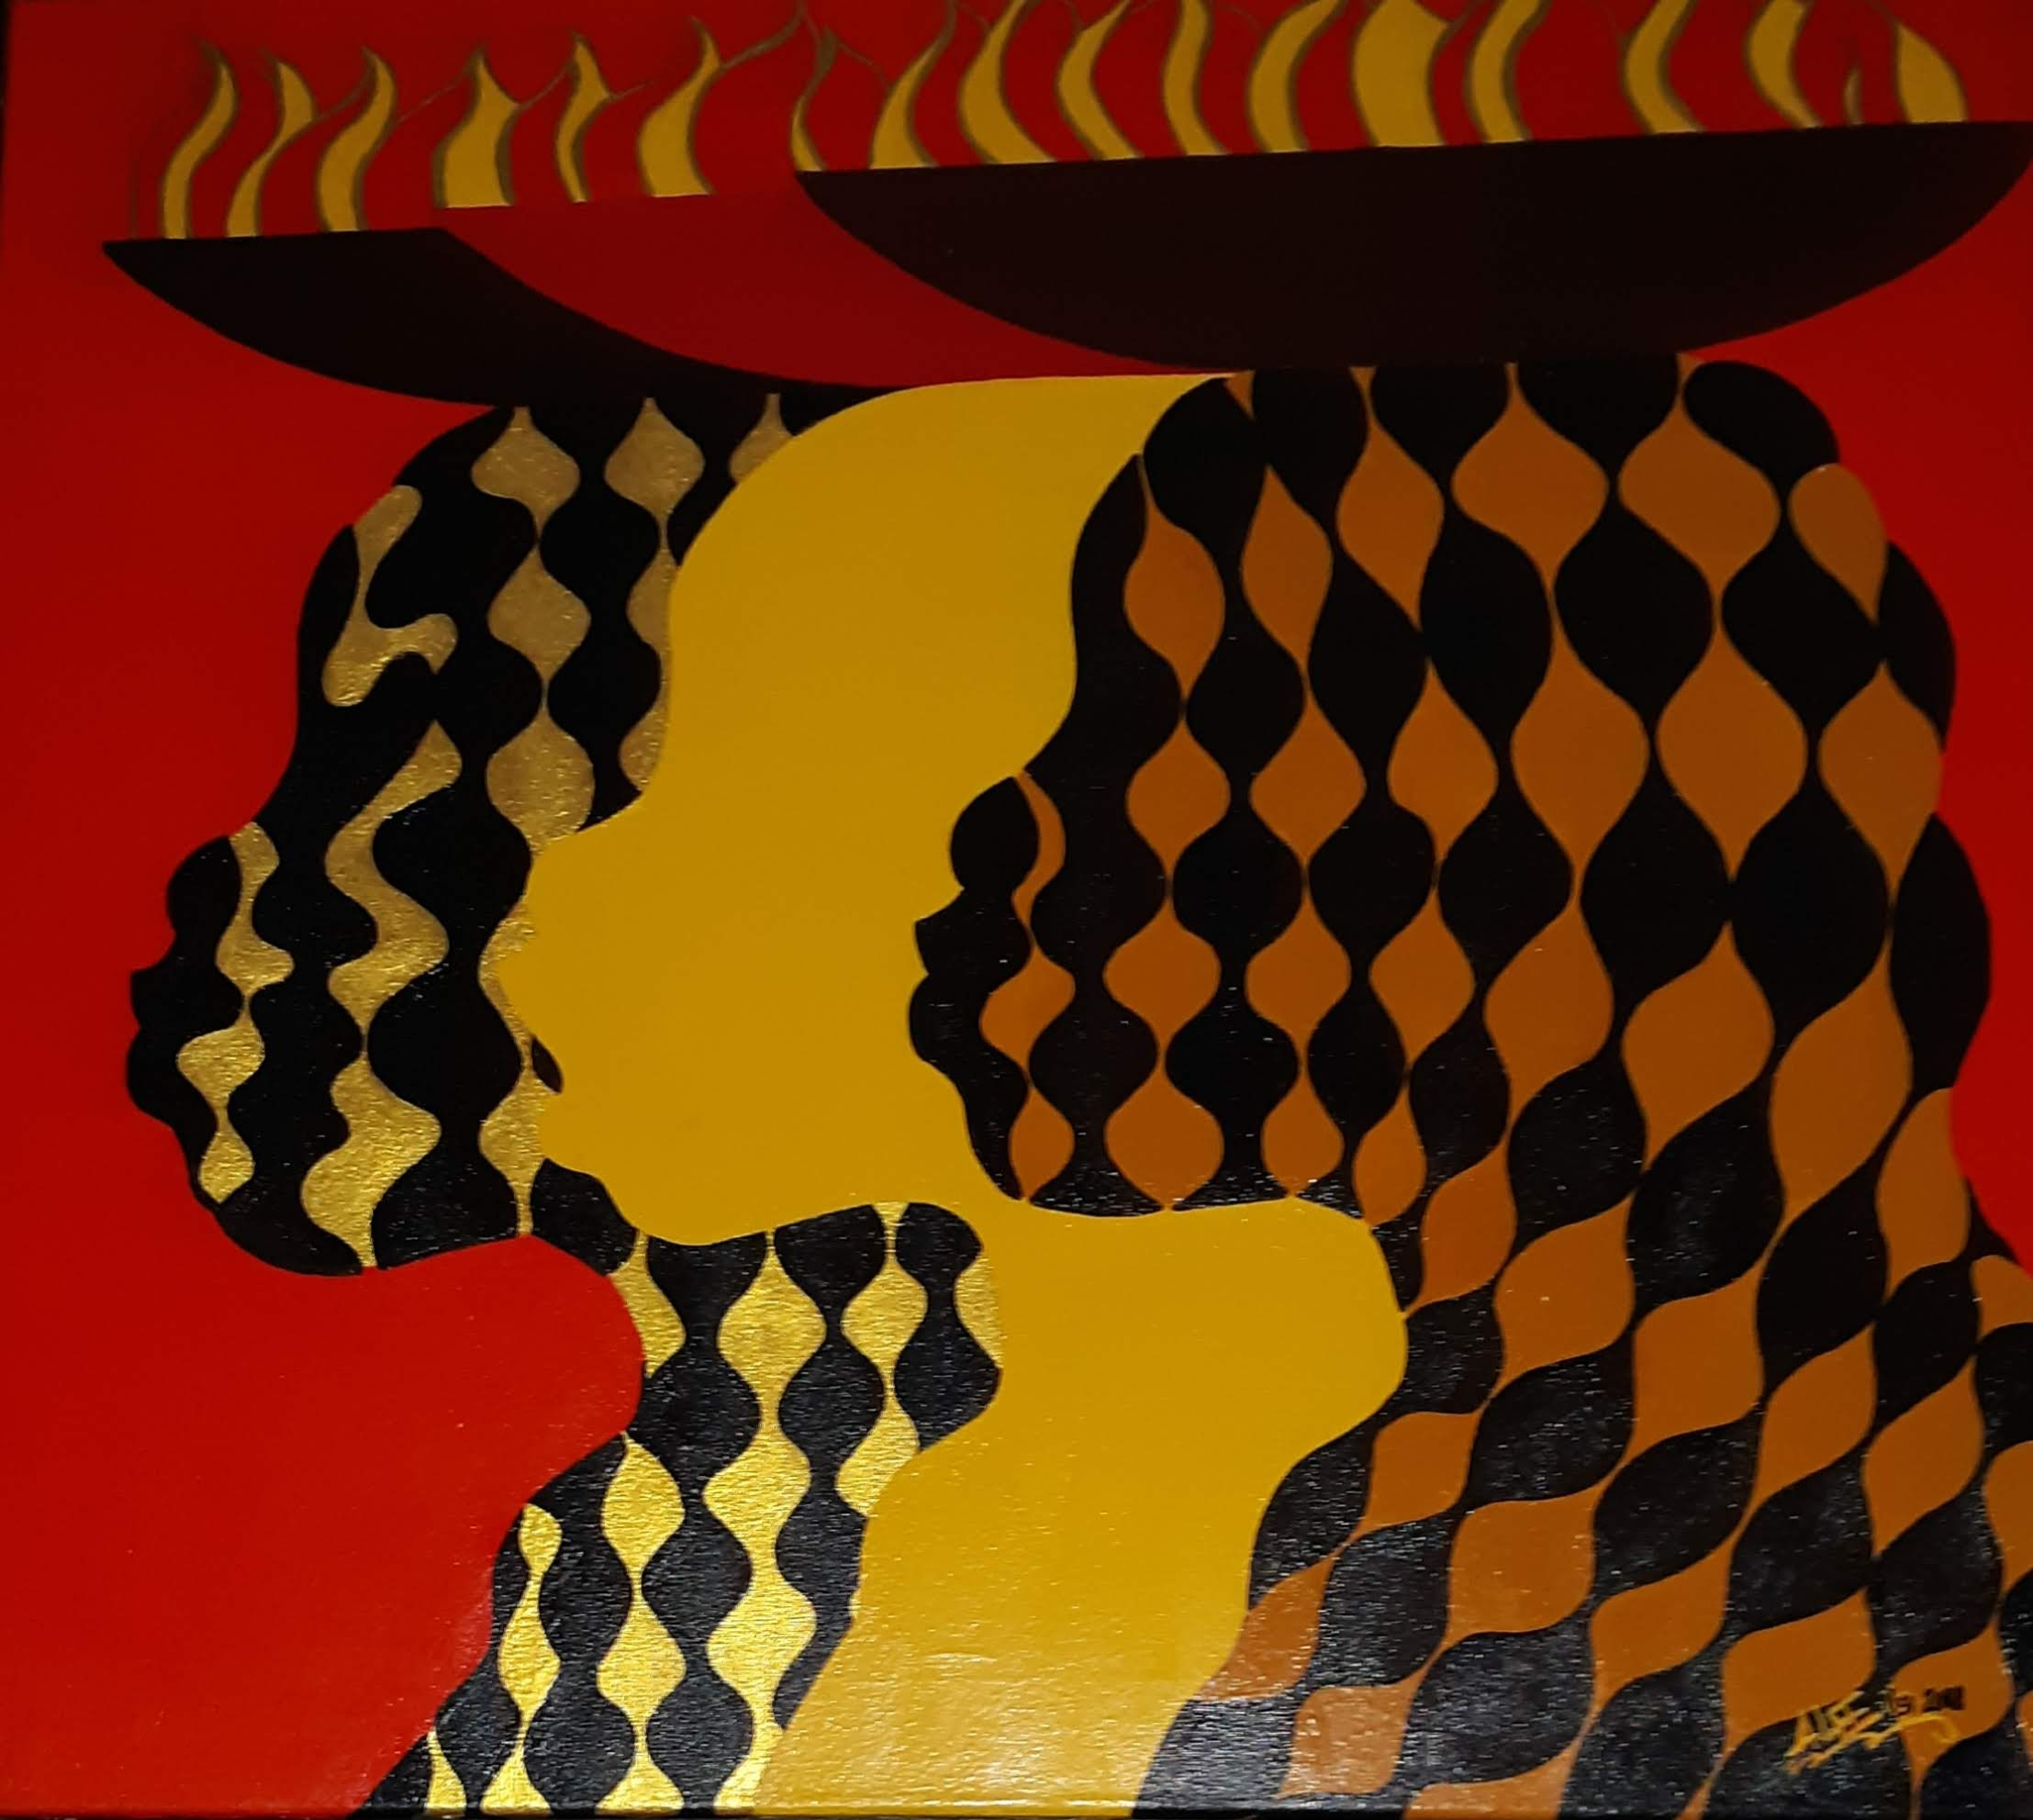 Me Myself and I artwork by Alee - art listed for sale on Artplode